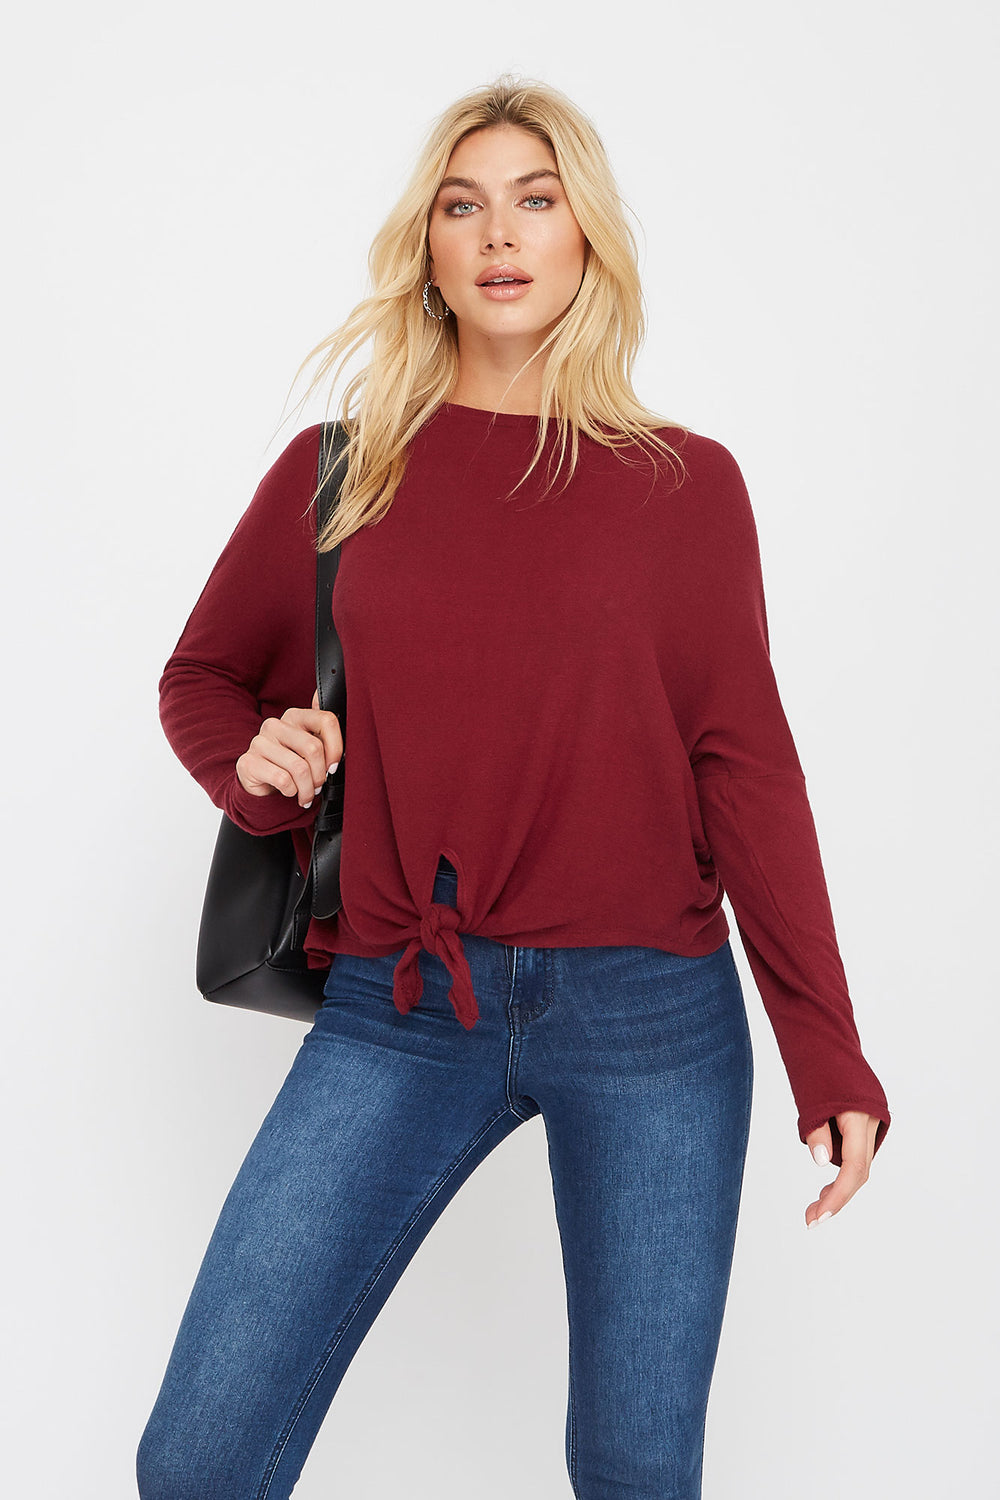 Soft Tie Dolman Long Sleeve Burgundy